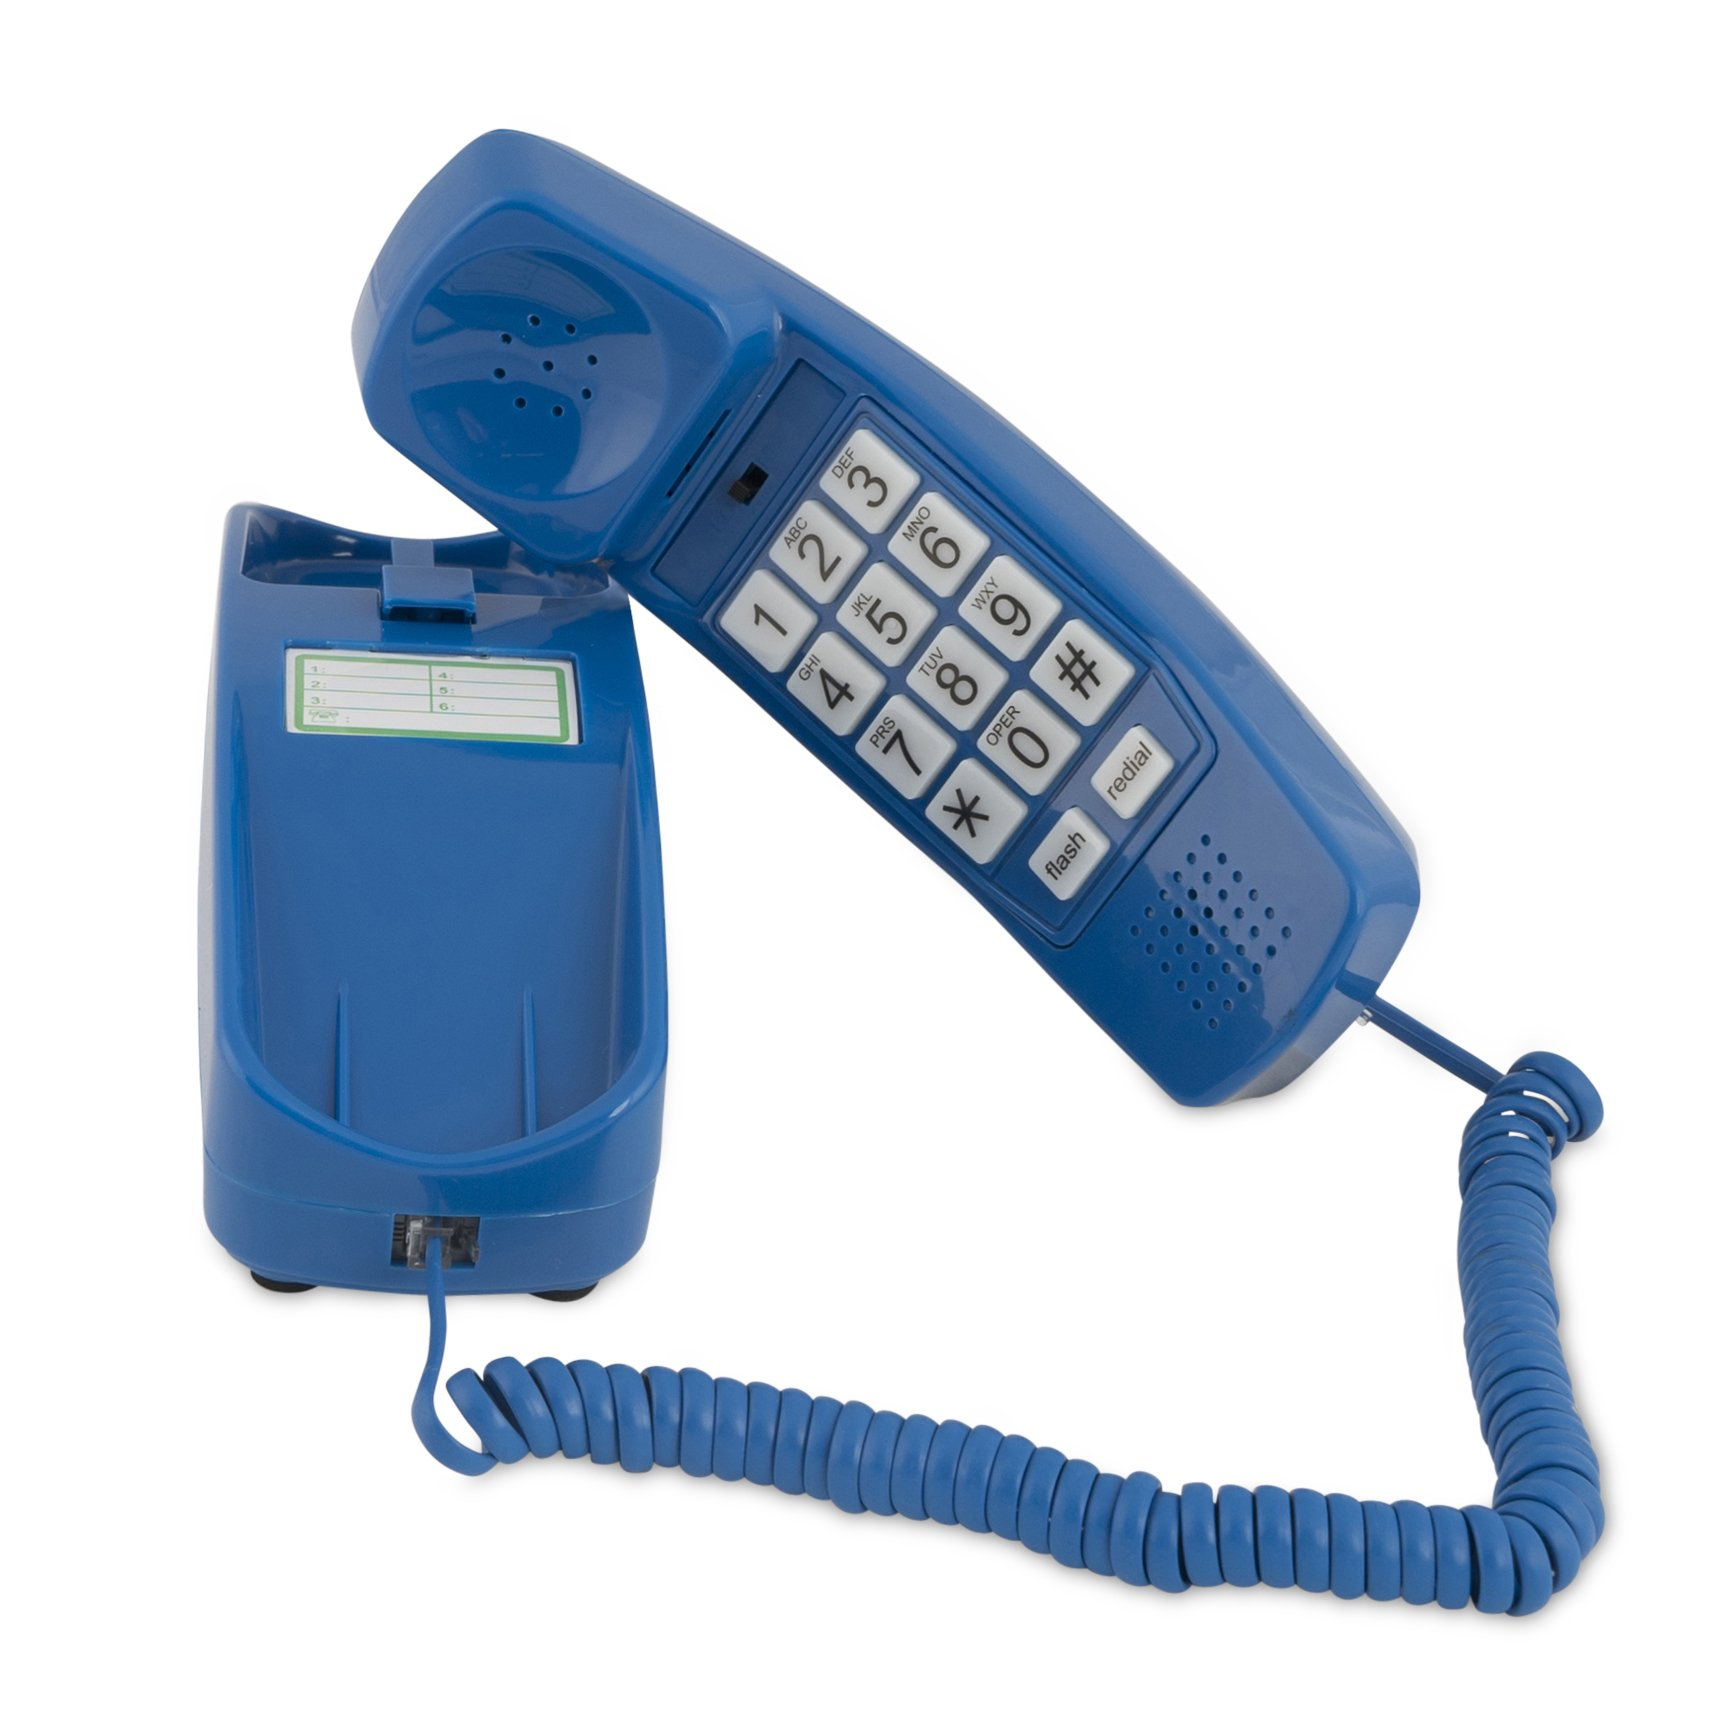 Trimline Corded Phone - Phones For Seniors - Phone for hearing impaired - Classic Blue - Retro Novelty Telephone - An Improved Version of the Princess Phones in 1965 - Style Big Button - iSoHo Phones